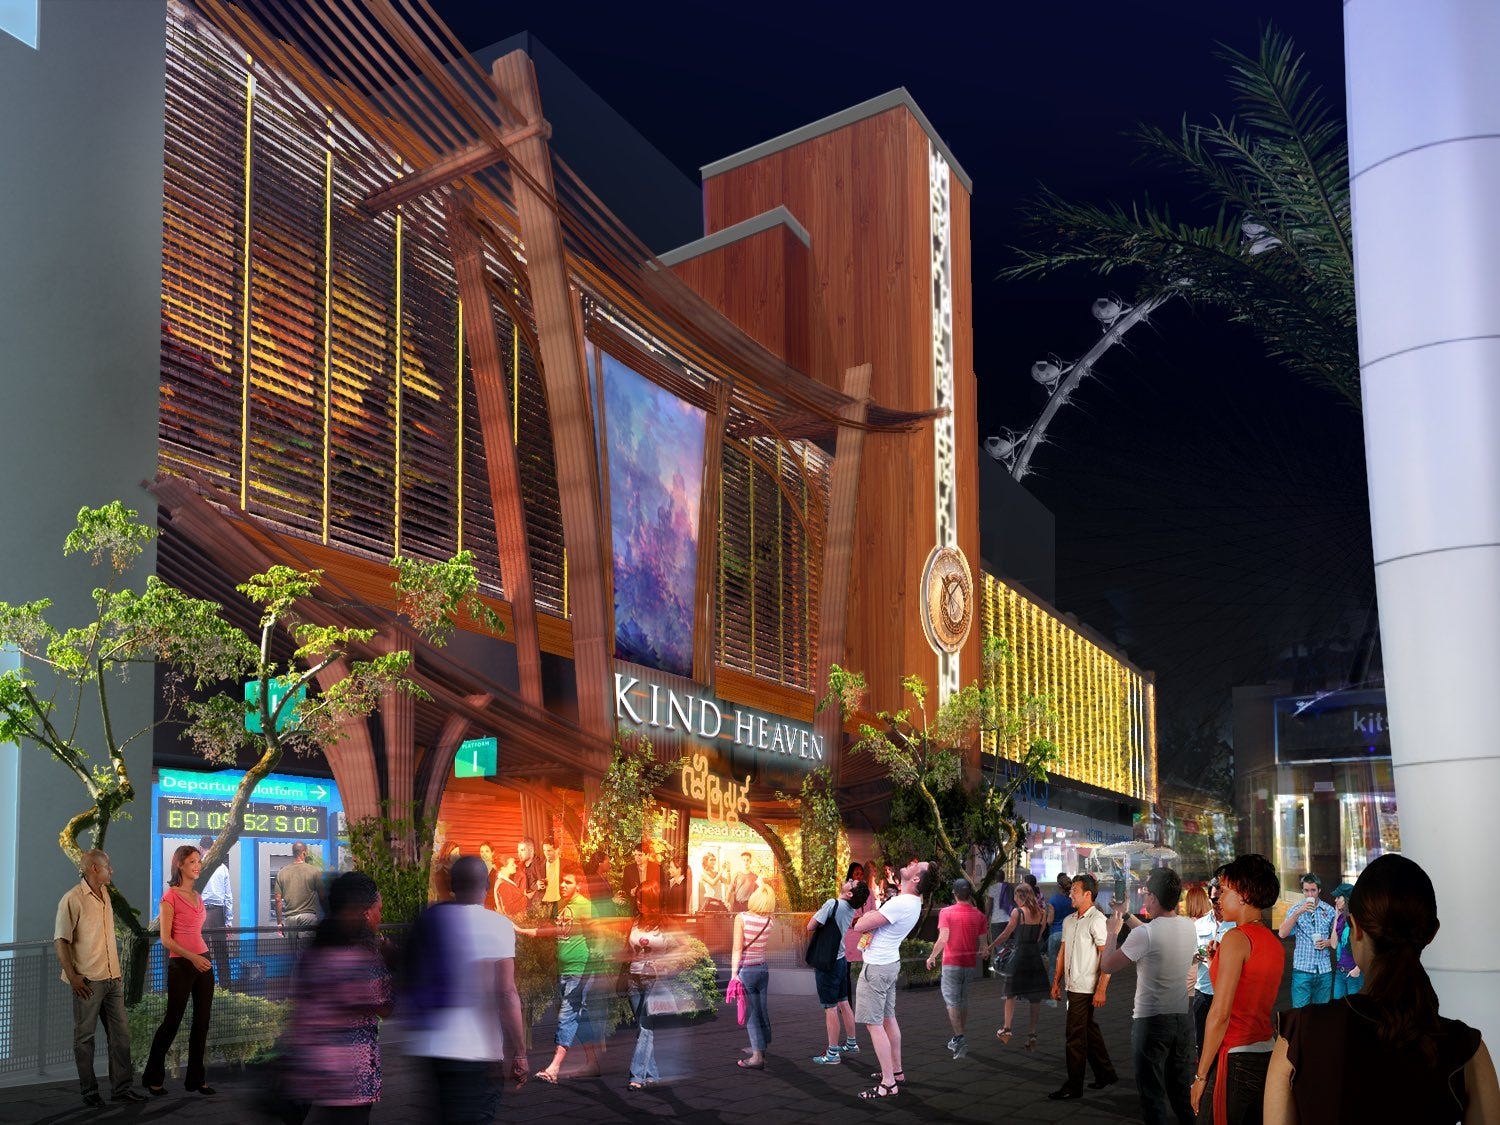 Perhaps the most outré venue to open in 2019 will be Kind Heaven, a hard-to-describe $100 million attraction set to open in the late summer on the Las Vegas Strip. The brainchild of Jane's Addiction front man and Lollapalooza impresario Perry Farrell, it will include dining and live music enveloped in a highly themed experience.